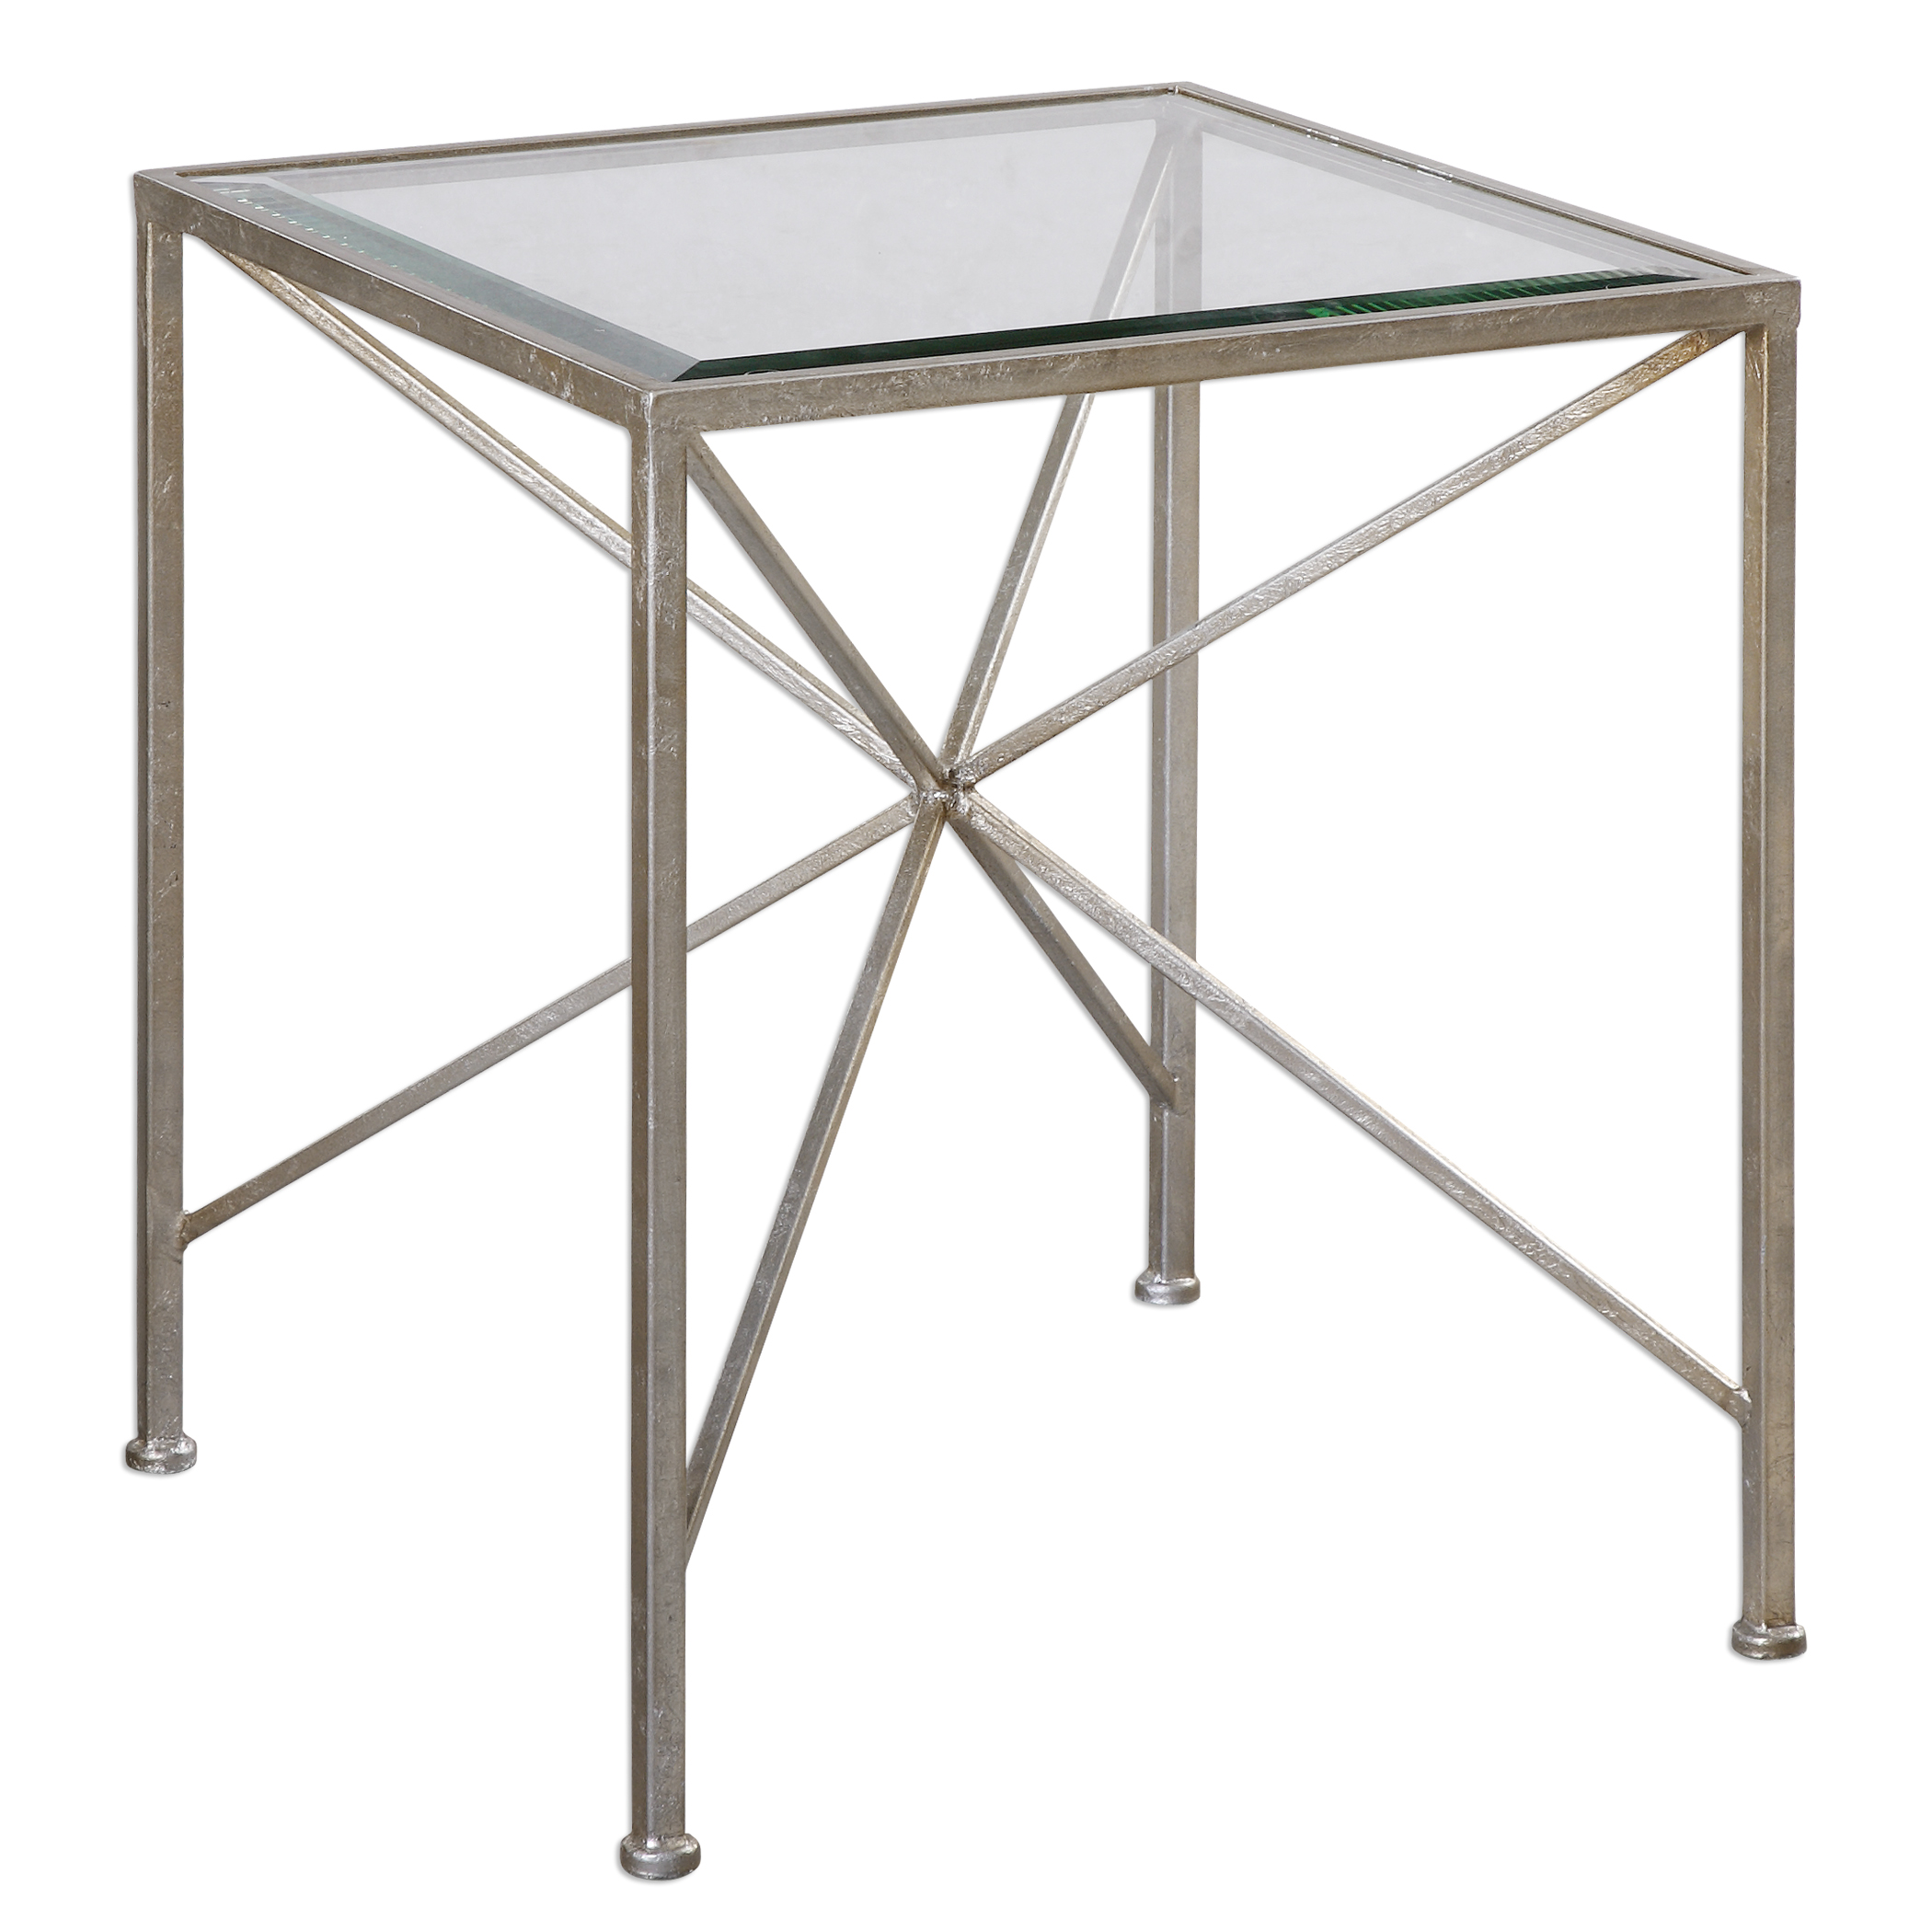 Uttermost Accent Furniture Silvana Antiqued Silver Cube Table - Item Number: 24656